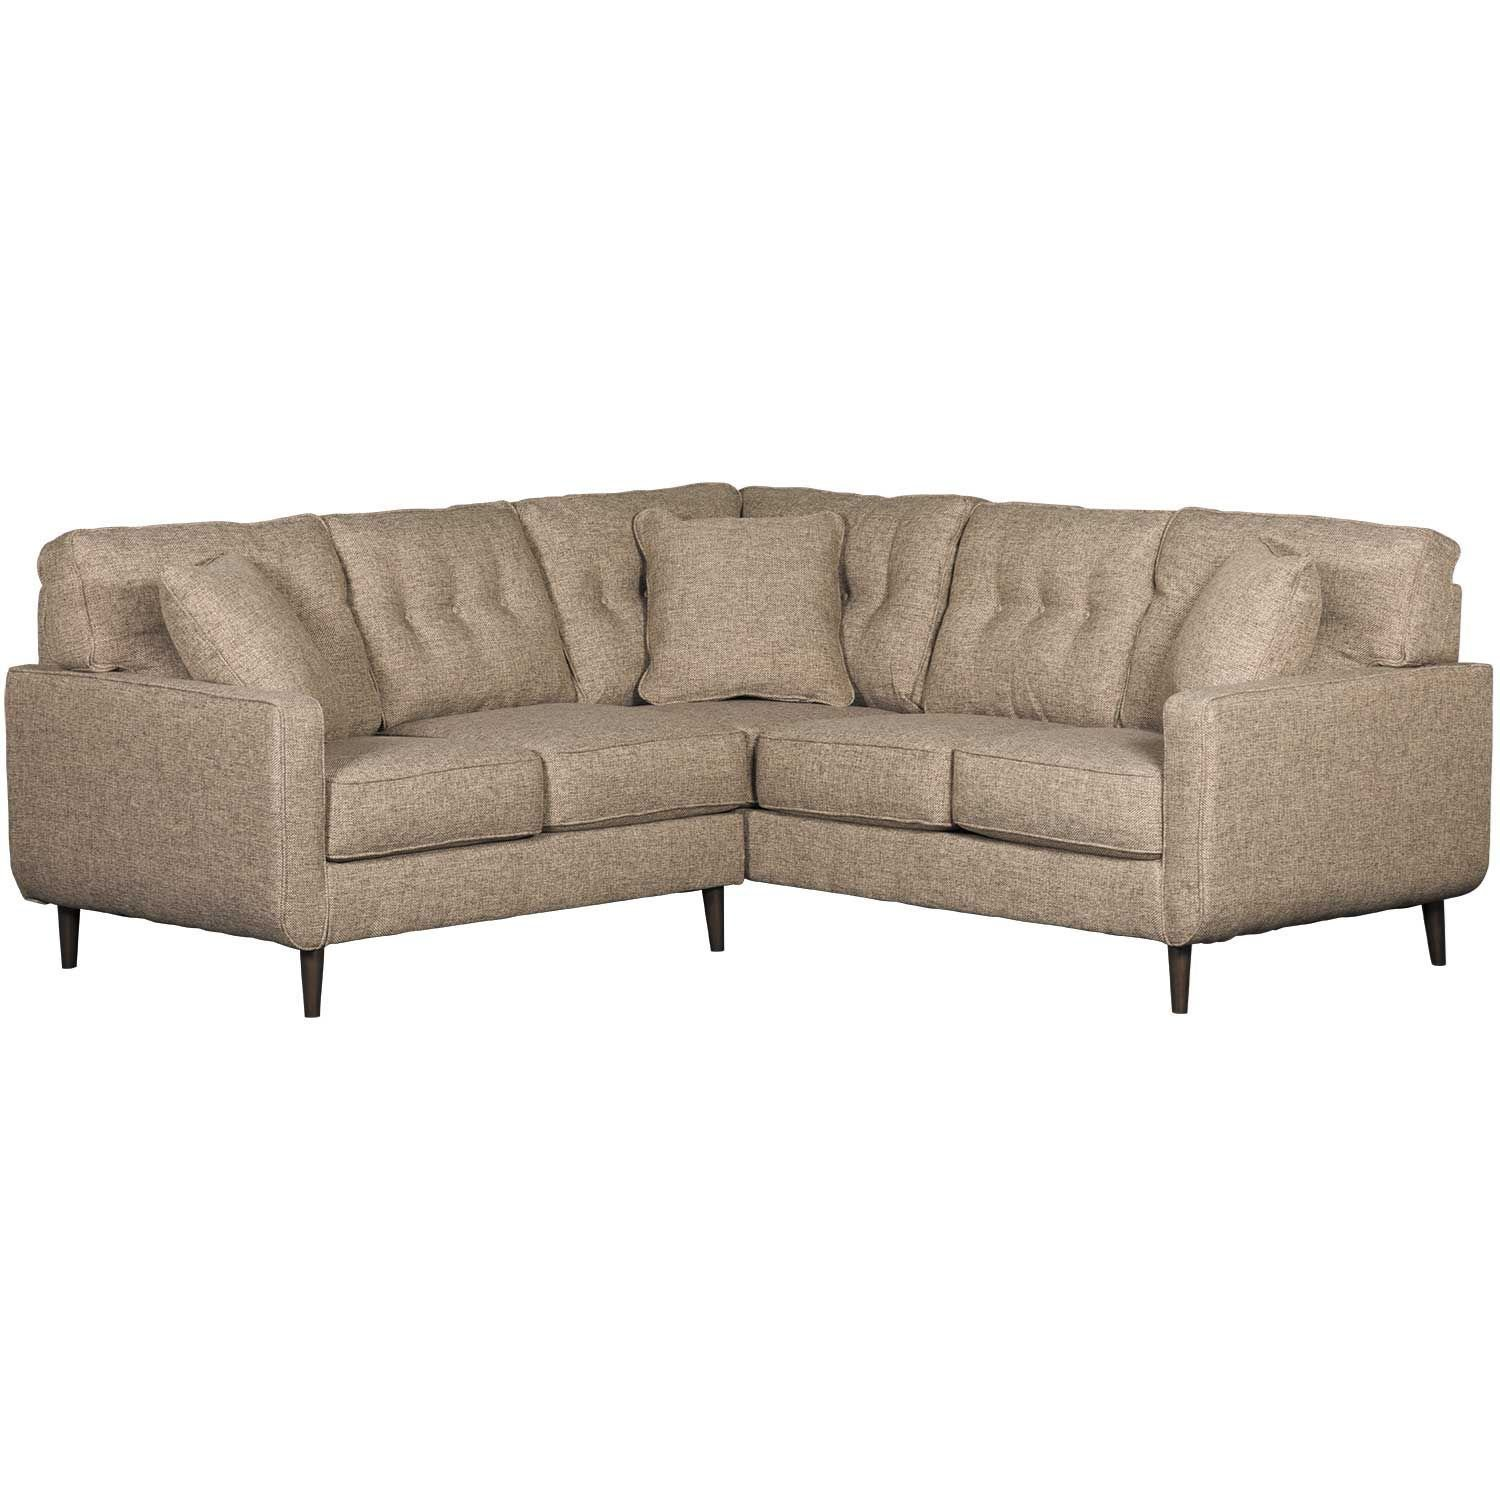 Picture of chento jute 2pc sectional w raf sofa